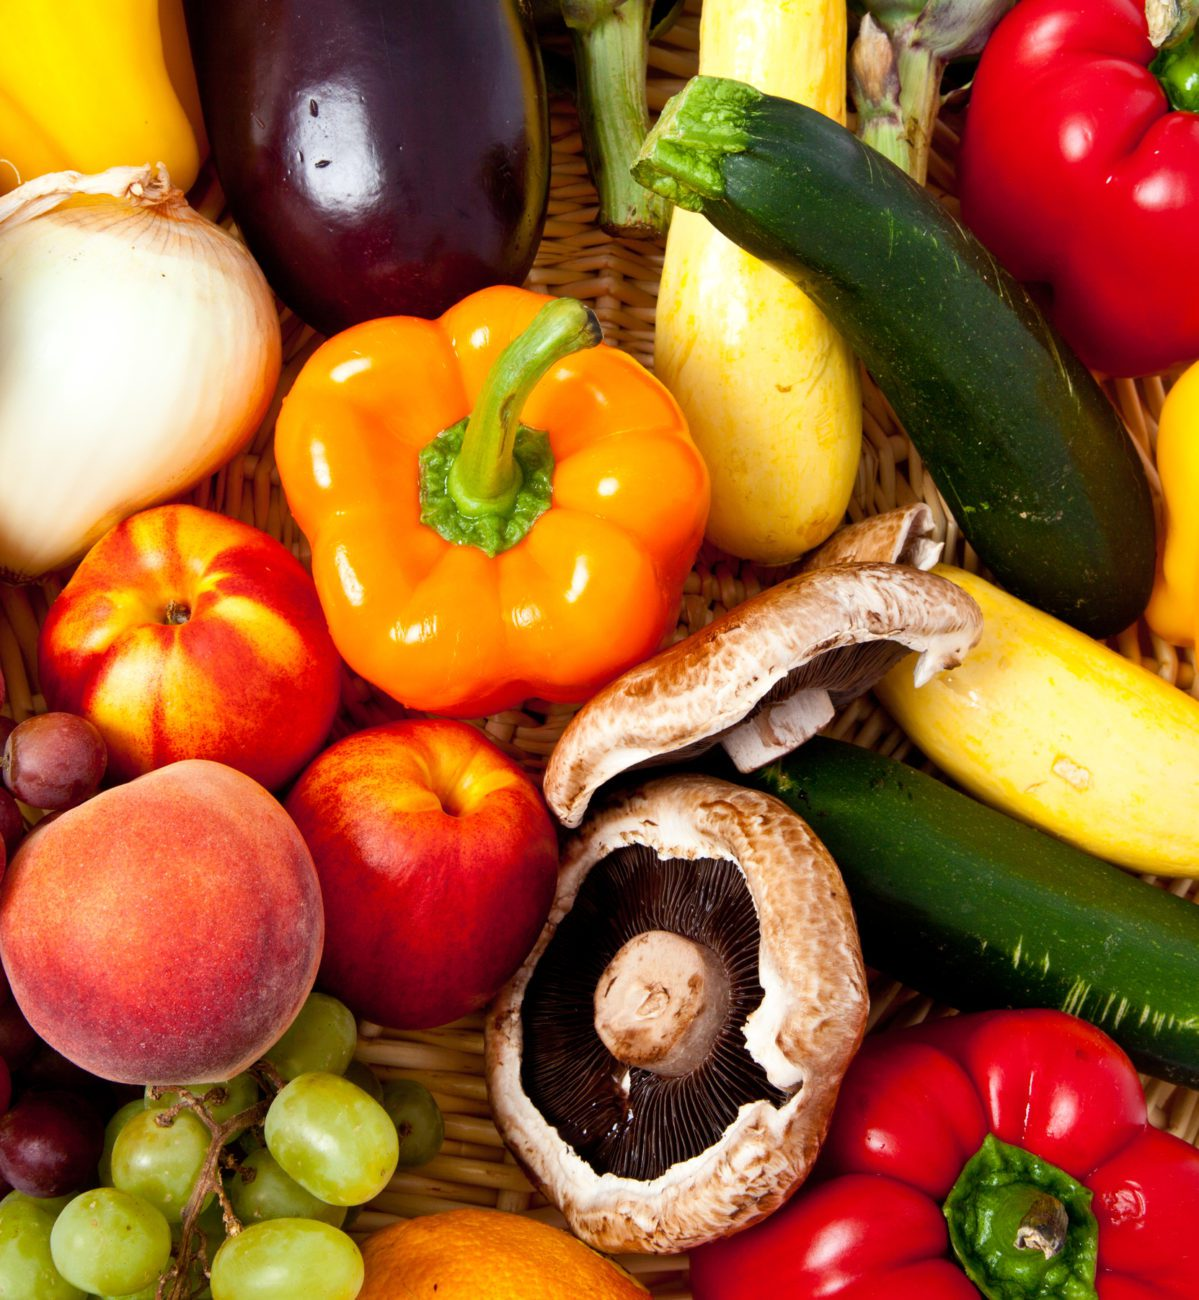 Making the Right Diet Choices For Your Oral Health